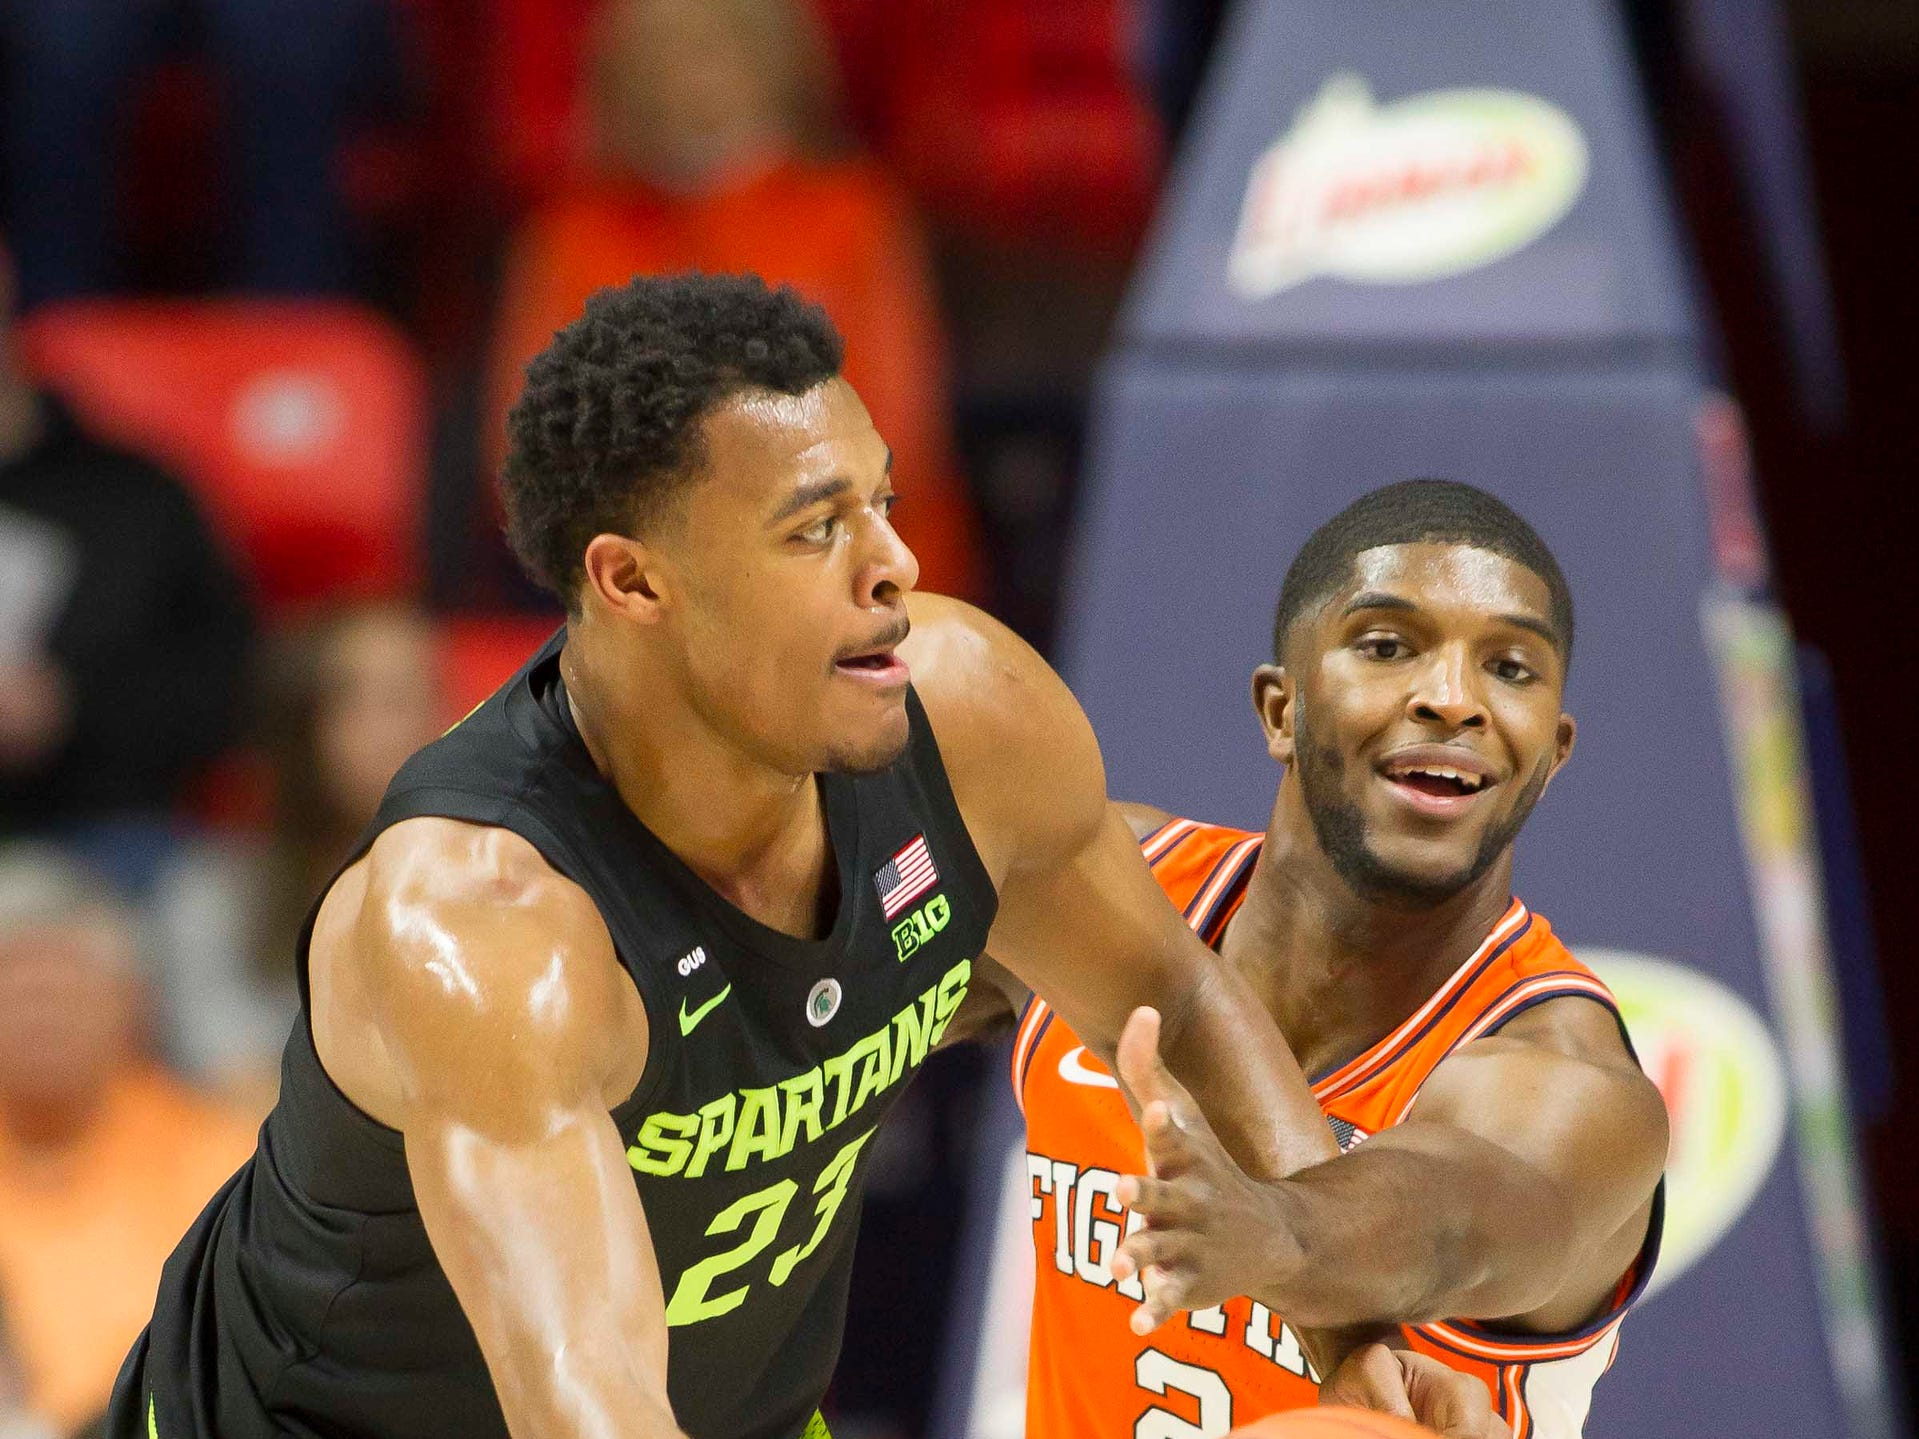 Illinois Fighting Illini forward Kipper Nichols (2) defends Michigan State Spartans forward Xavier Tillman (23) during the first half at State Farm Center on February 5, 2019.